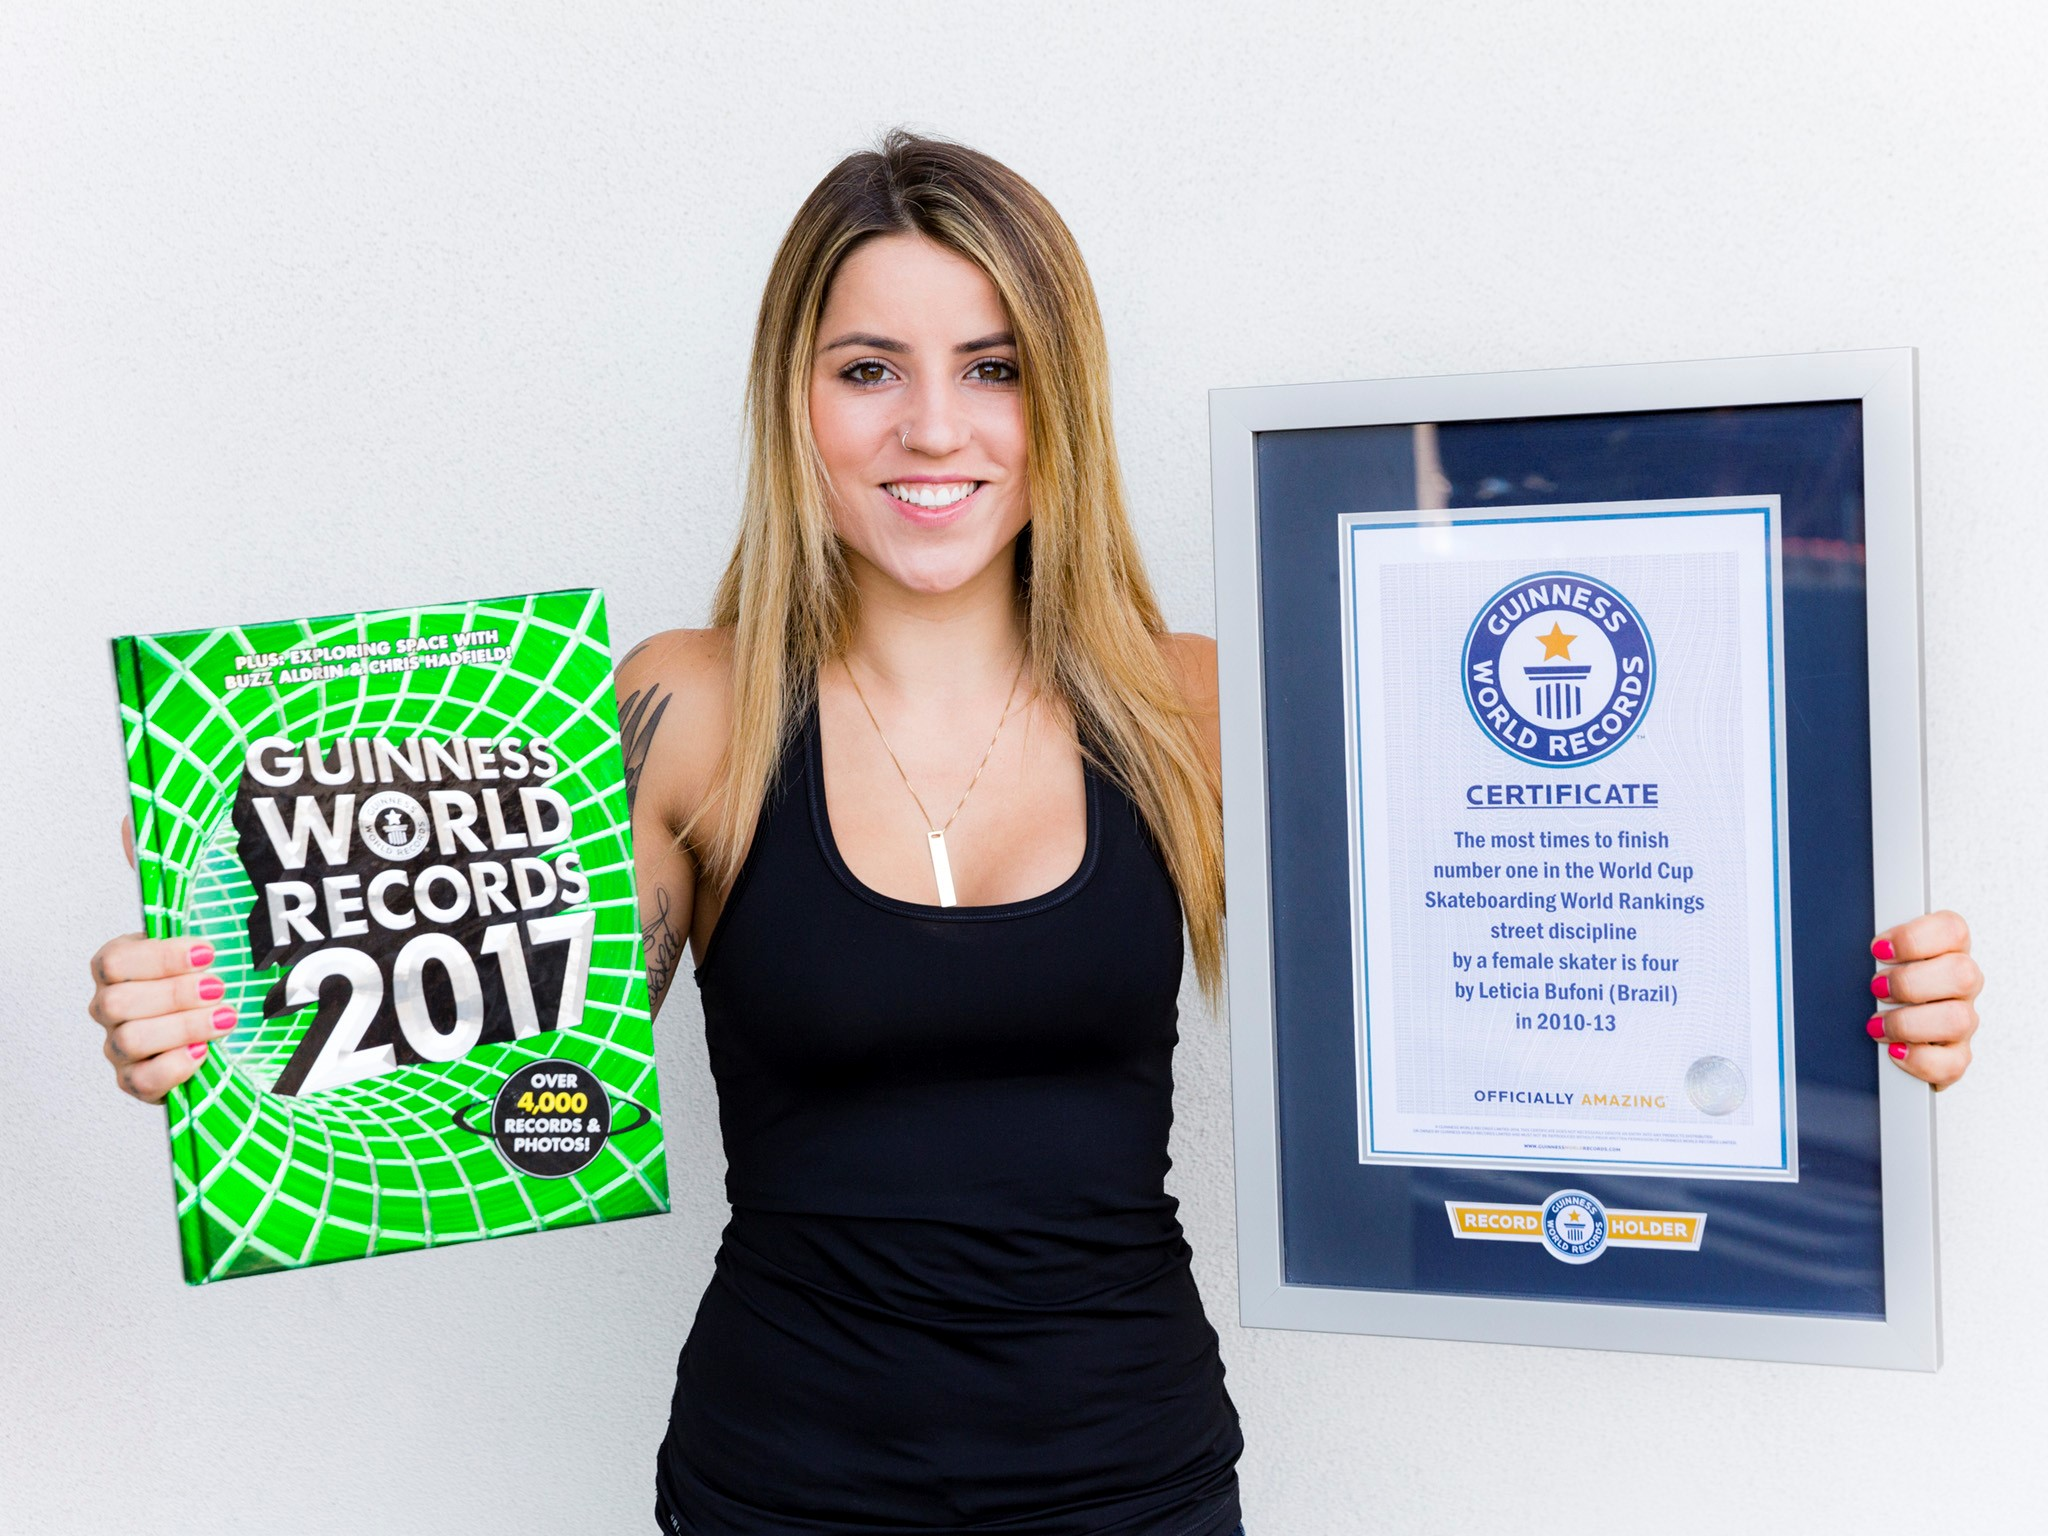 leticia-bufoni-featured-in-guinness-world-records-2017-edition